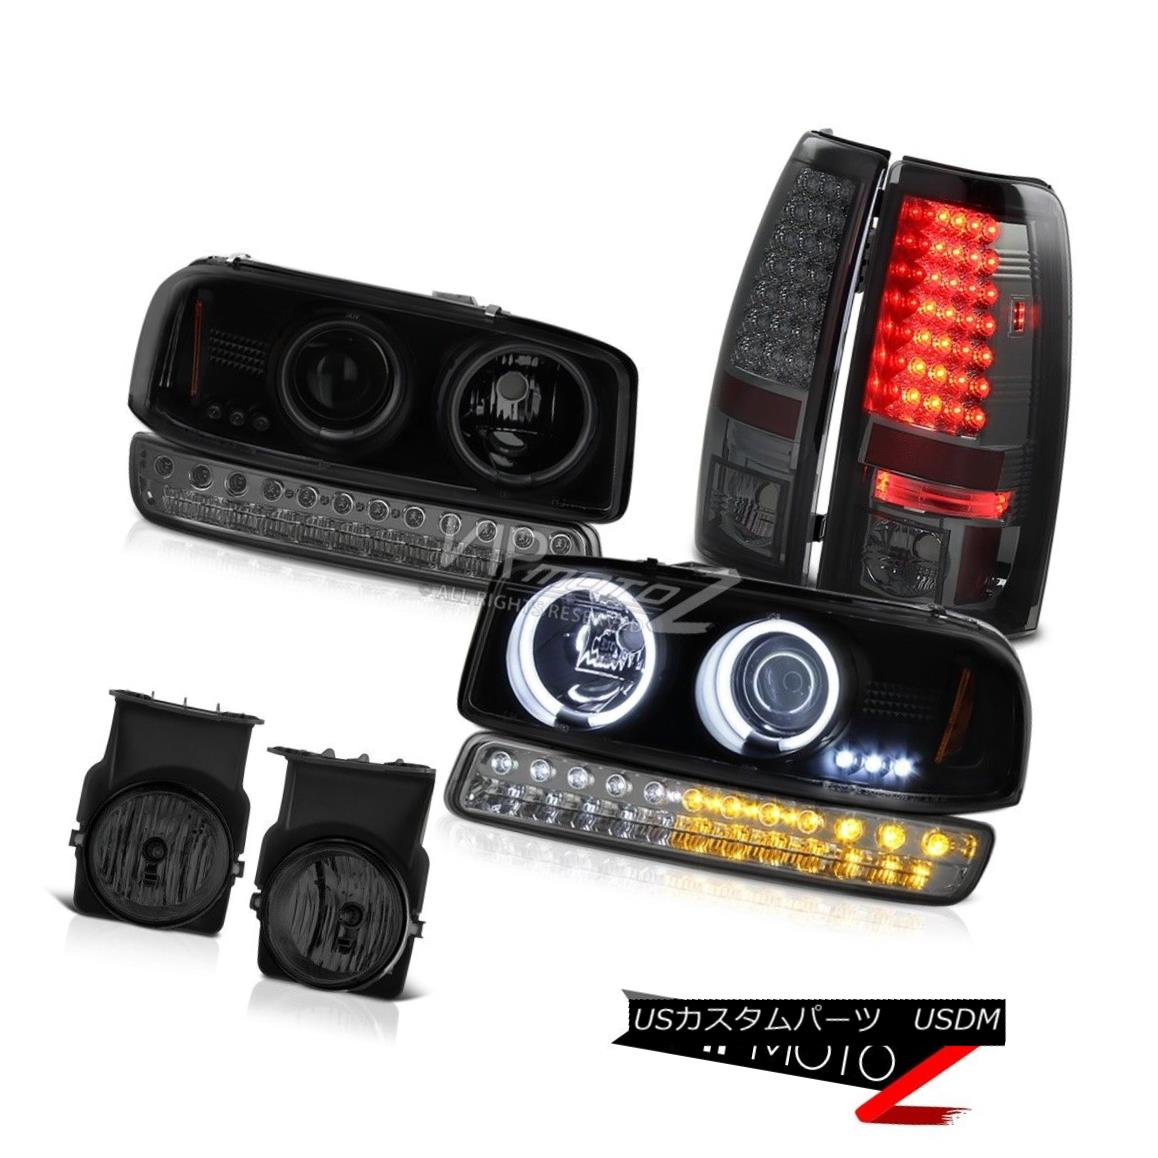 ヘッドライト 2003-2006 Sierra 6.0L Foglights SMD Tail Brake Lights Parking Light Headlamps 2003-2006 Sierra 6.0L Foglights SMDテールブレーキライトライトヘッドランプ